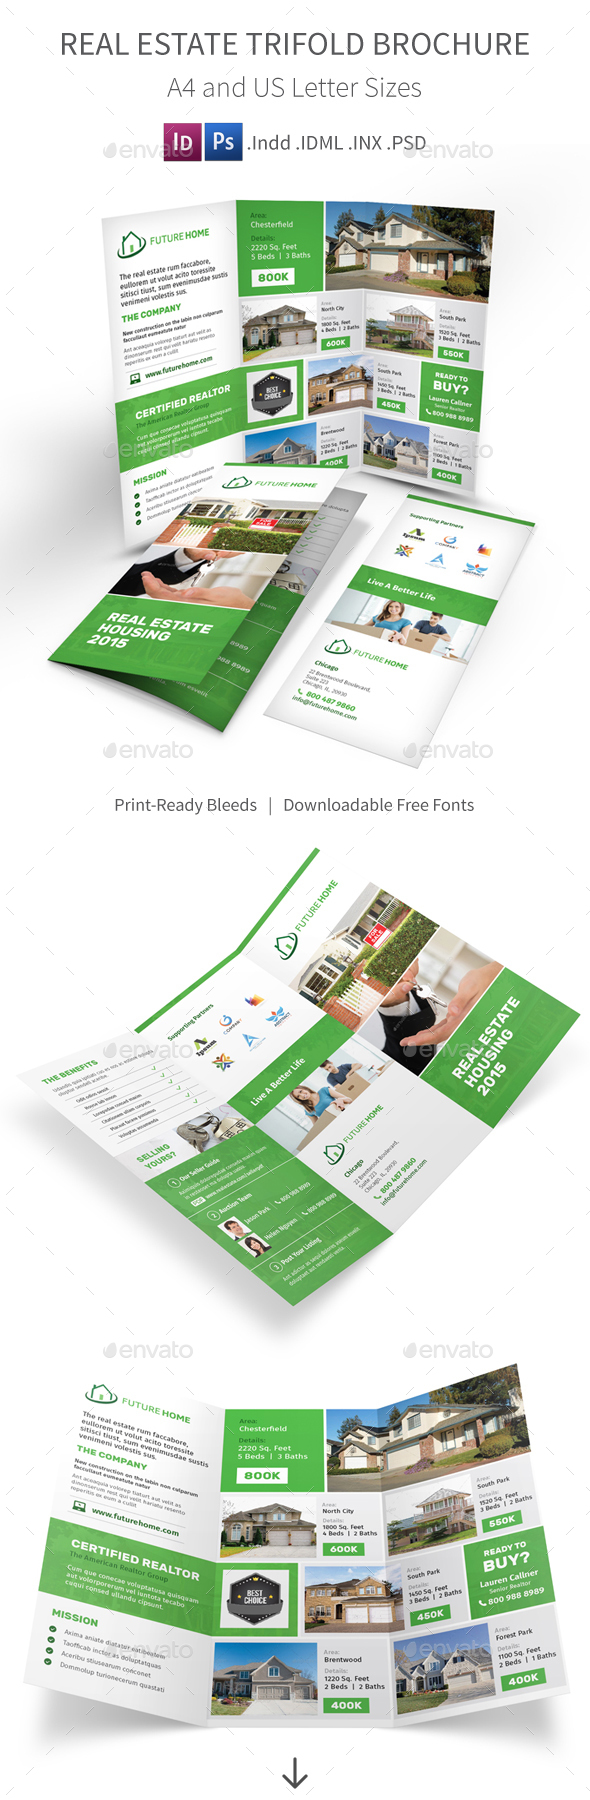 Real Estate Trifold Brochure 3 - Corporate Brochures